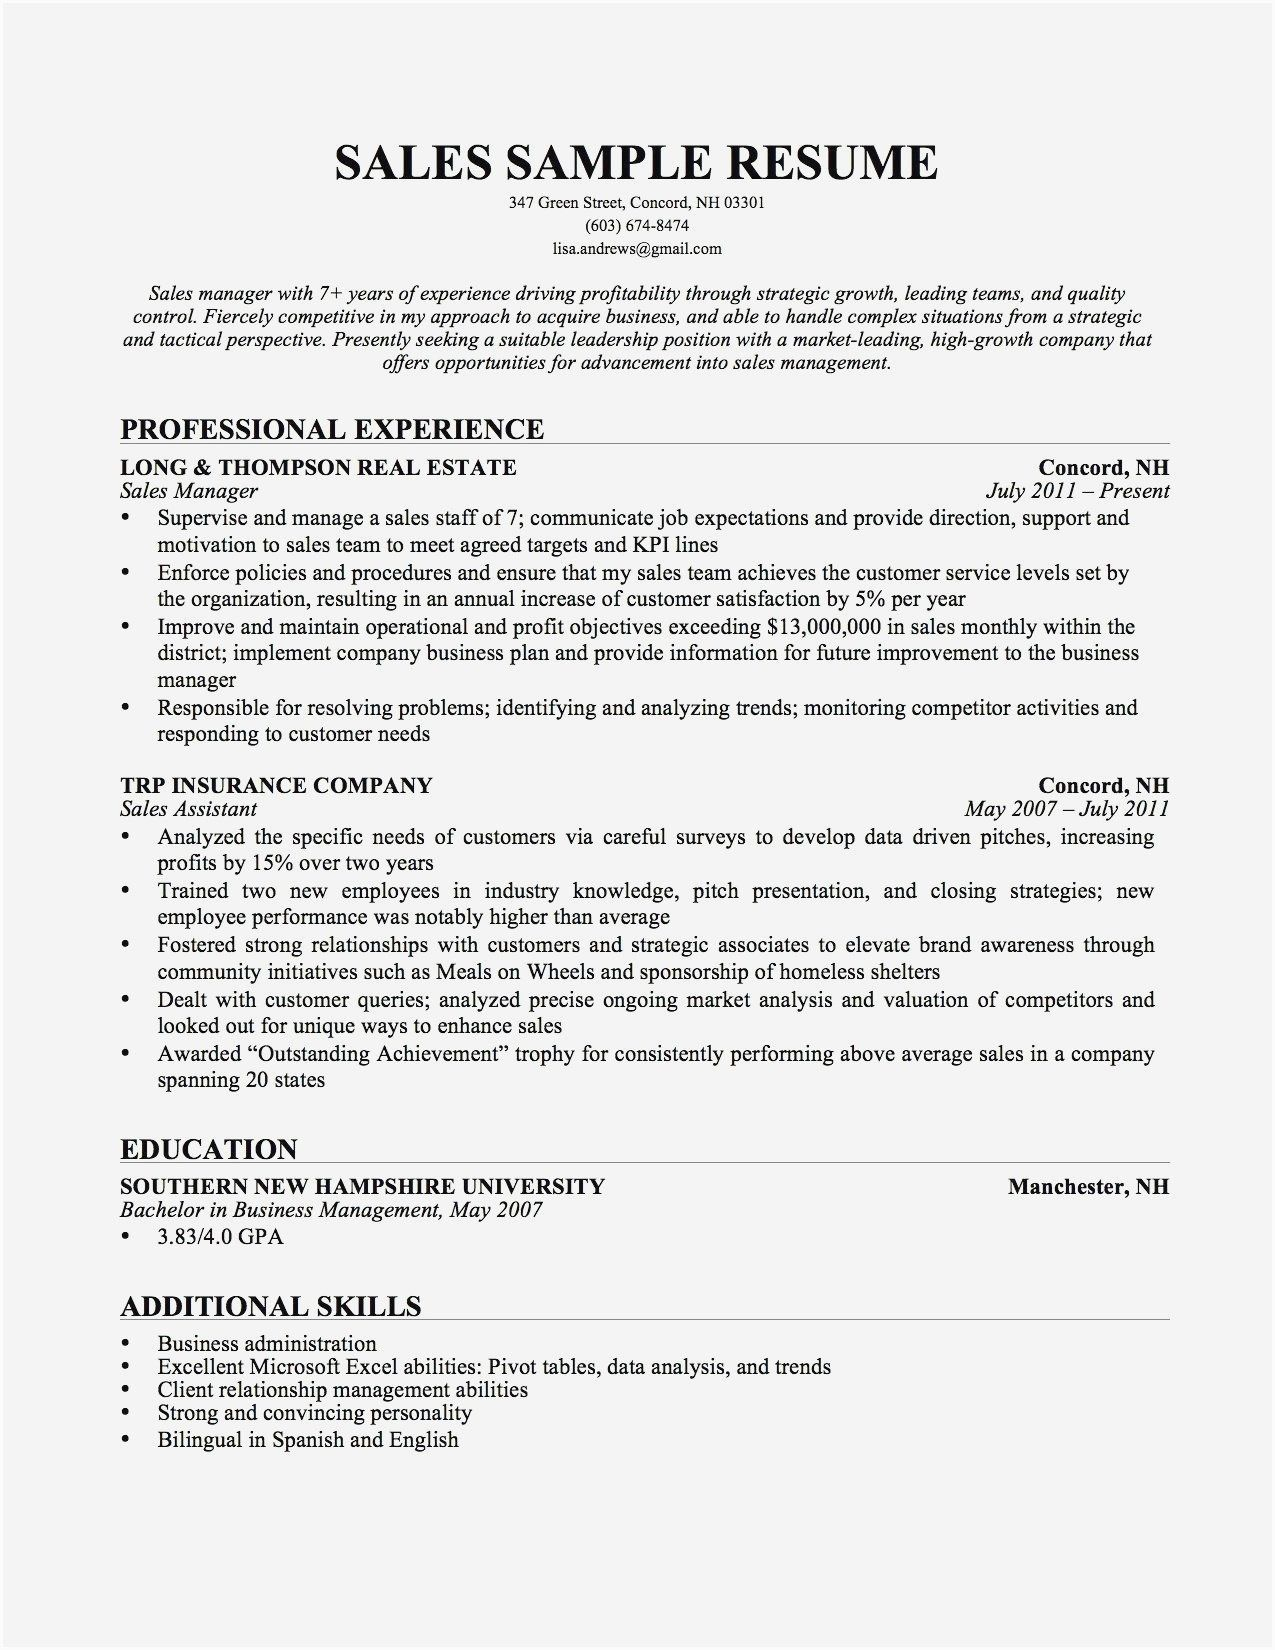 Health Care Administration Resume Samples Unique Free Healthcare Administration Resume Samples Resum Resume Objective Examples Job Resume Examples Resume Words